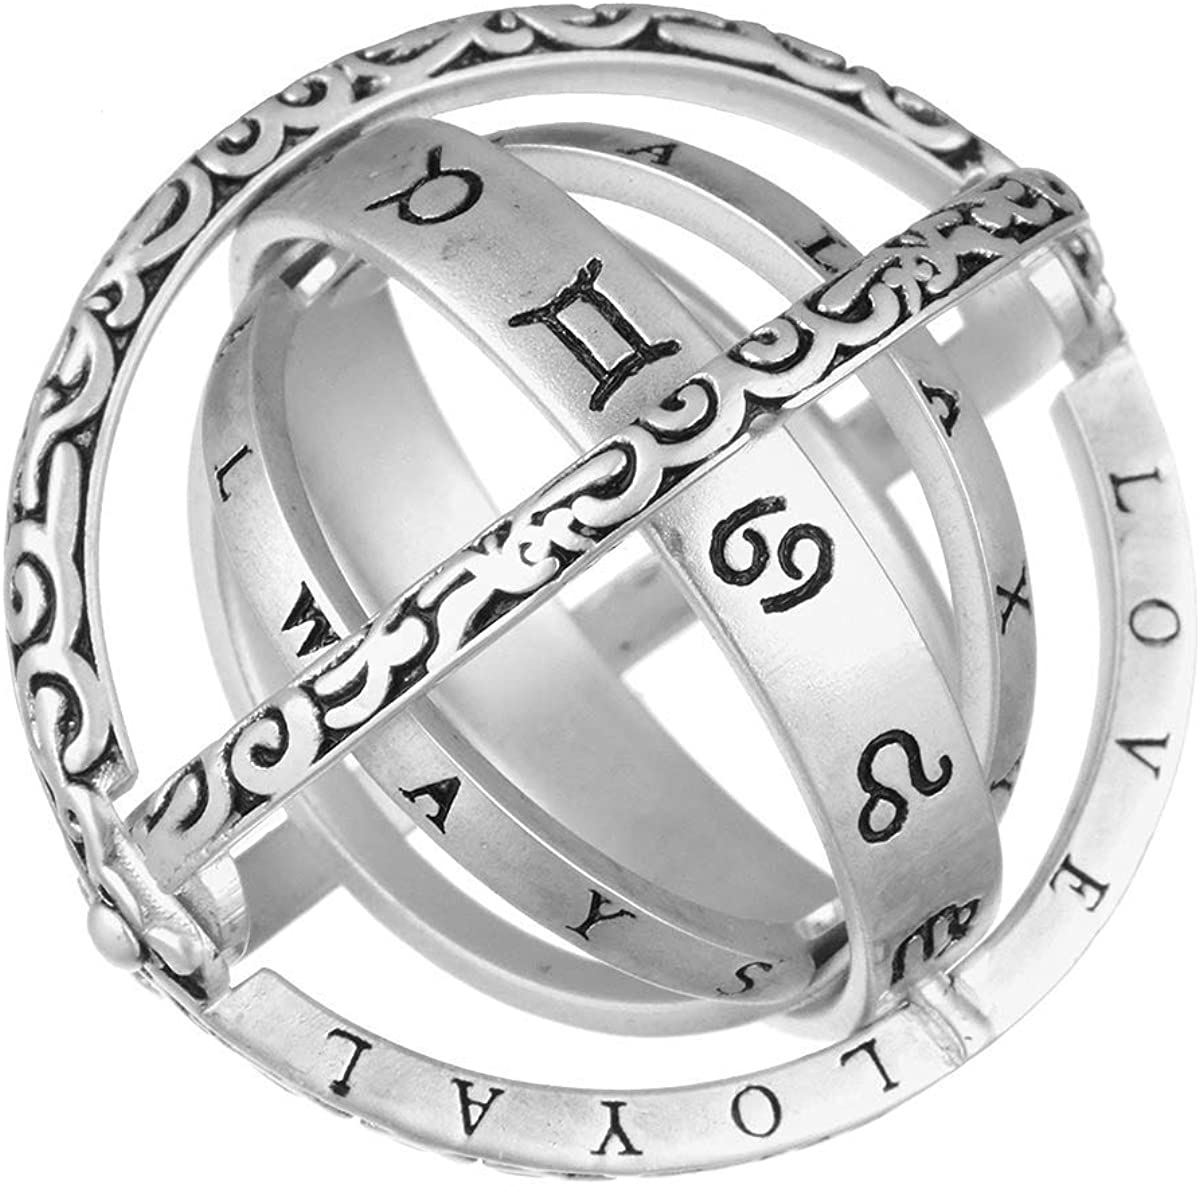 Laenshi Astronomical Sphere お求めやすく価格改定 Couple Silver Ring and for F Him ついに再販開始 Her